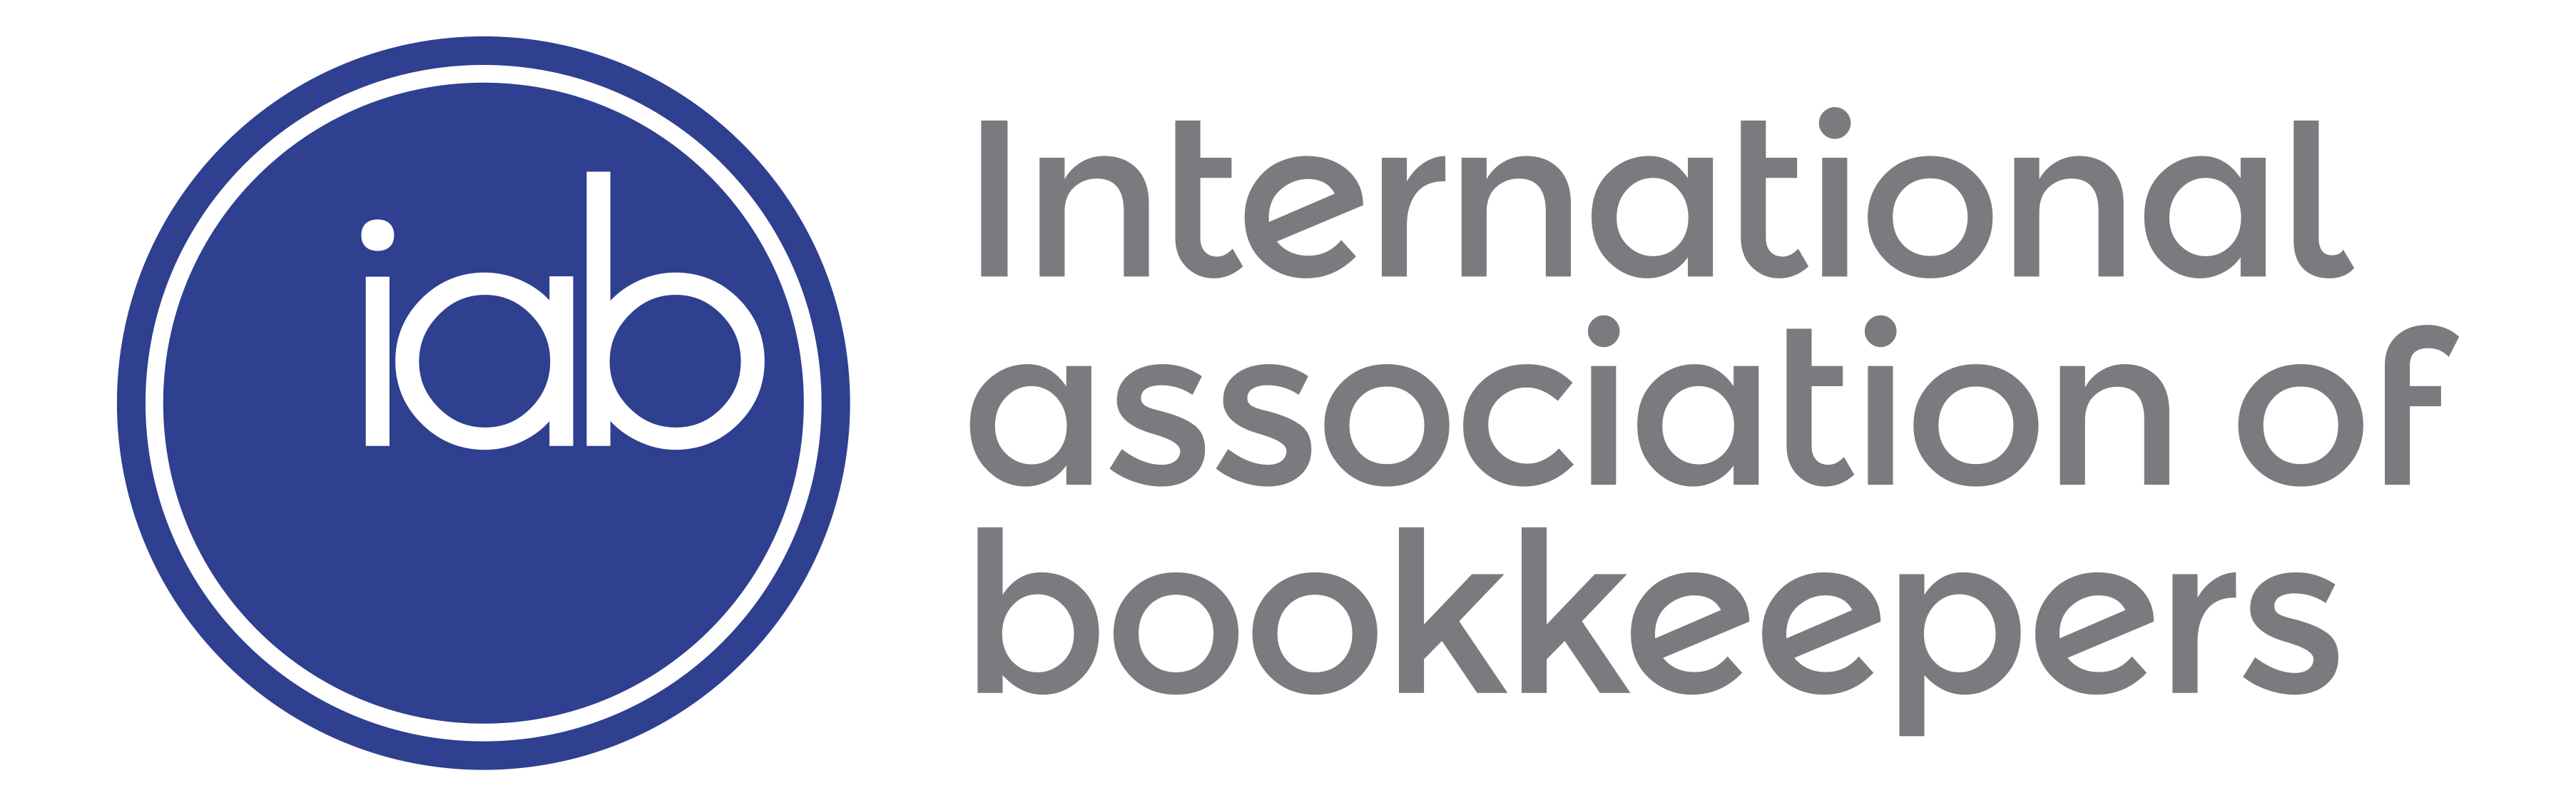 logo for International Association of Bookkeepers